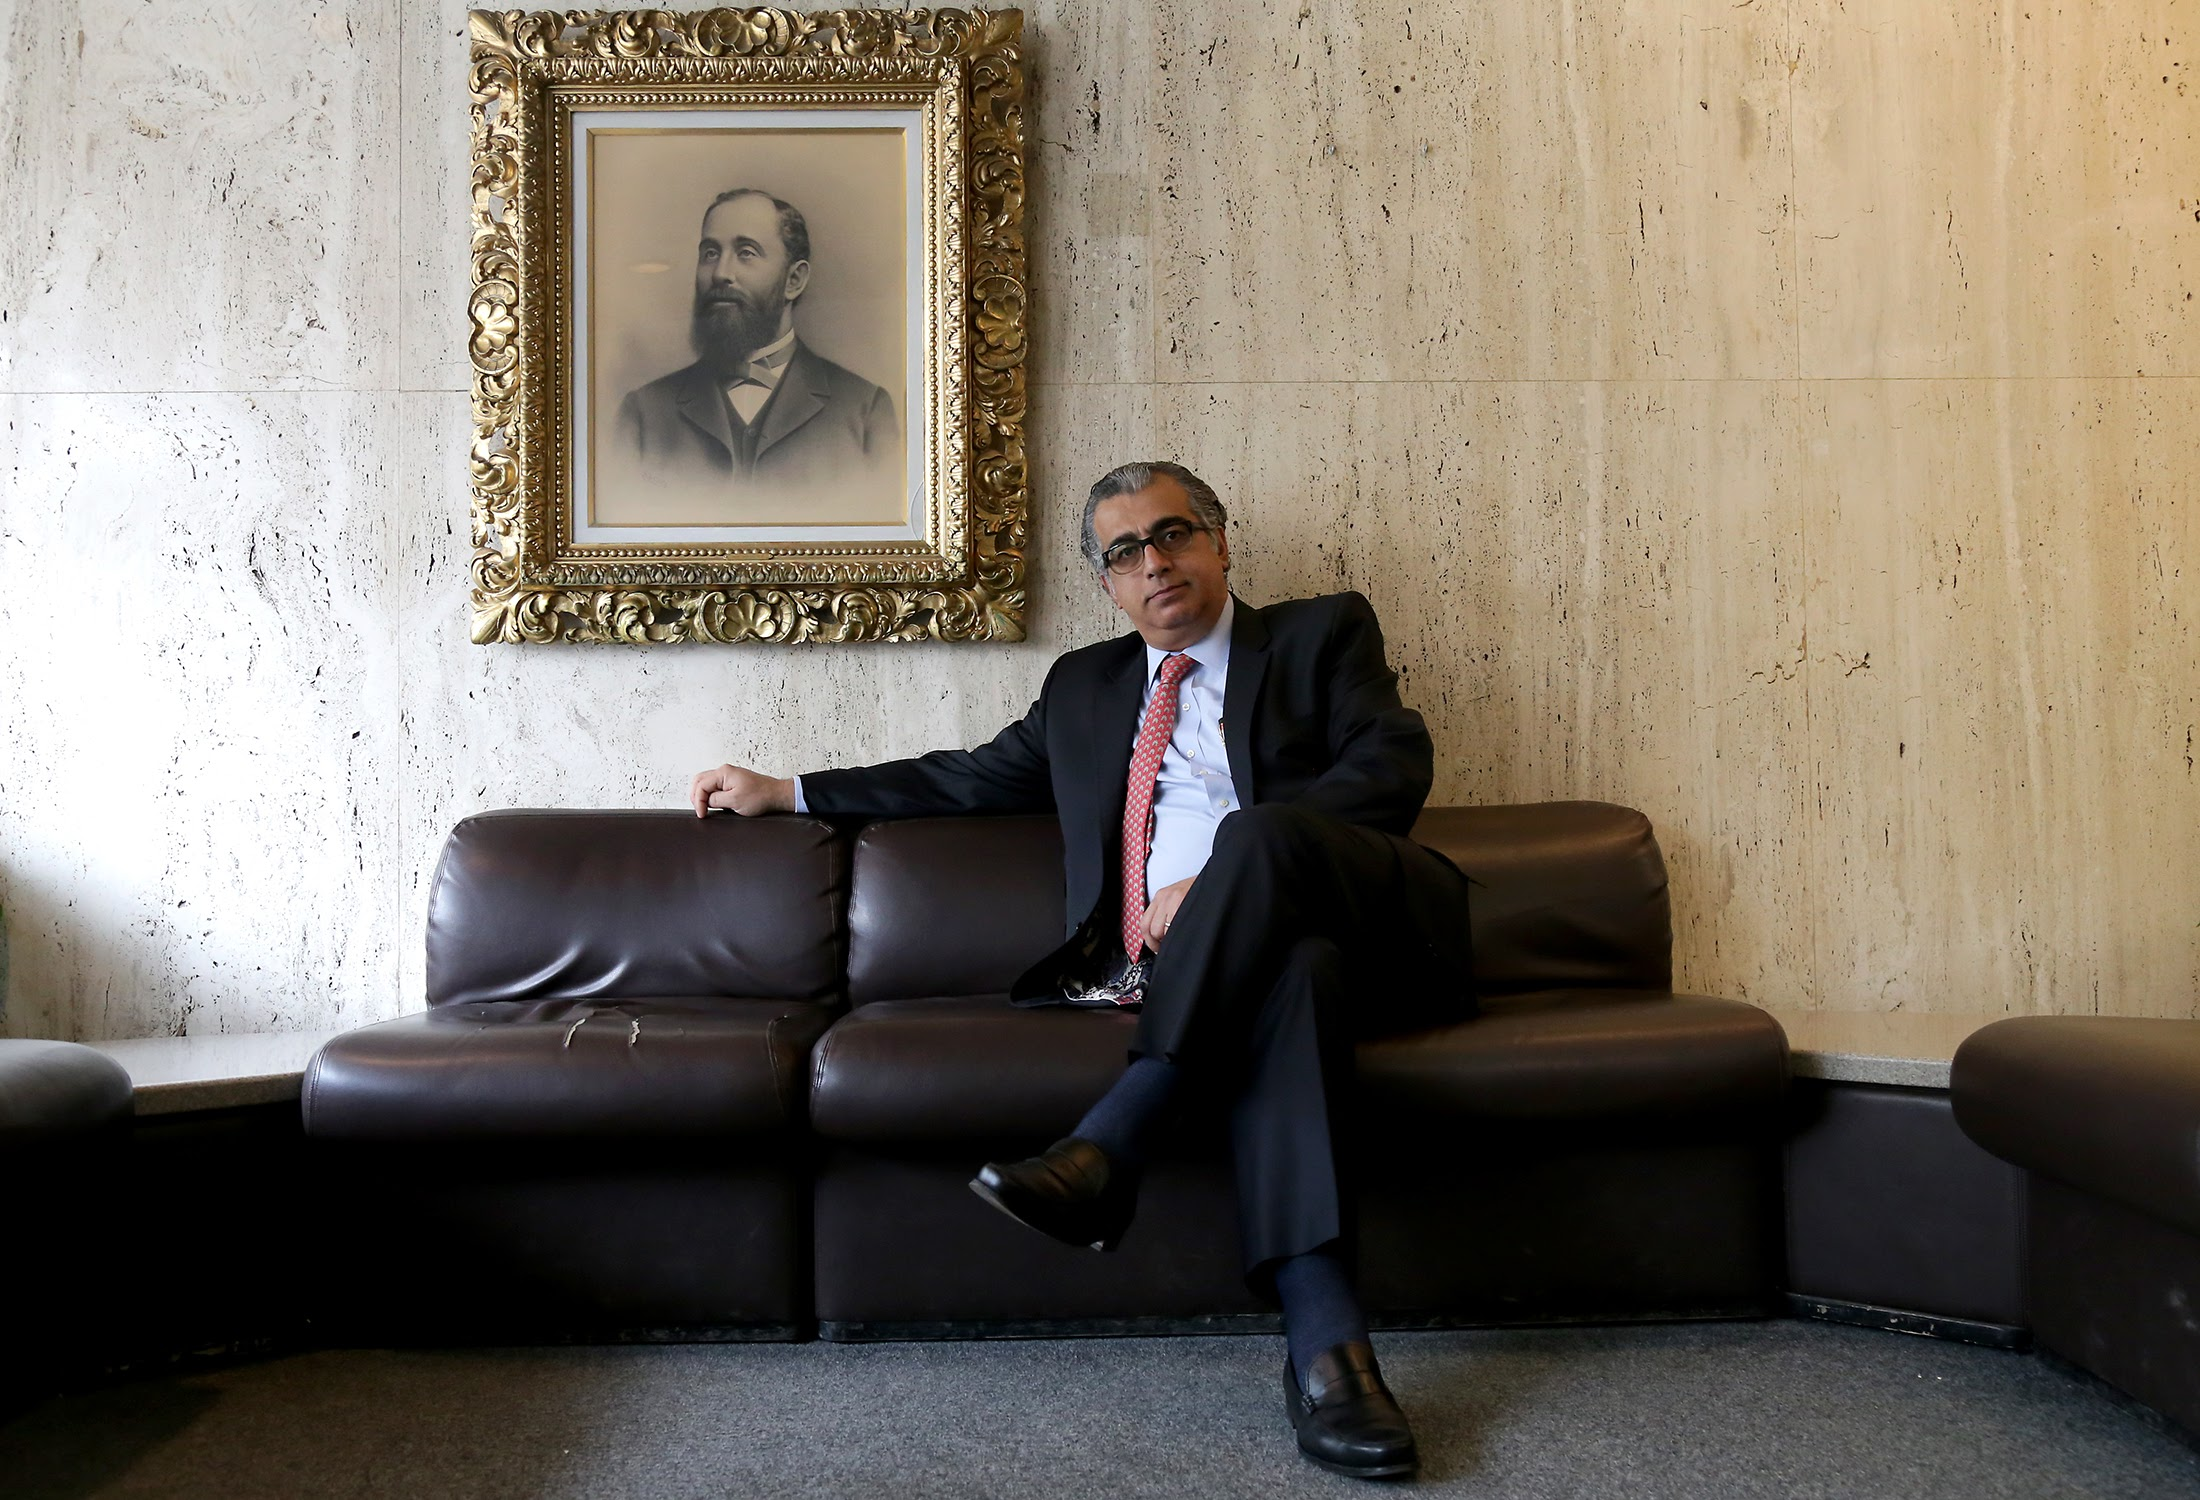 Ali Al-Khafaji, pictured here in Scaife Hall, is a professor of critical care medicine at the University of Pittsburgh and a medical director at UPMC Montefiore. He was born in Britain, raised in Iraq and is a U.S. citizen. His sister was supposed to visit from Iraq recently, but had to cancel because of Trump's executive order. (Photo by Guy Wathen/PublicSource)